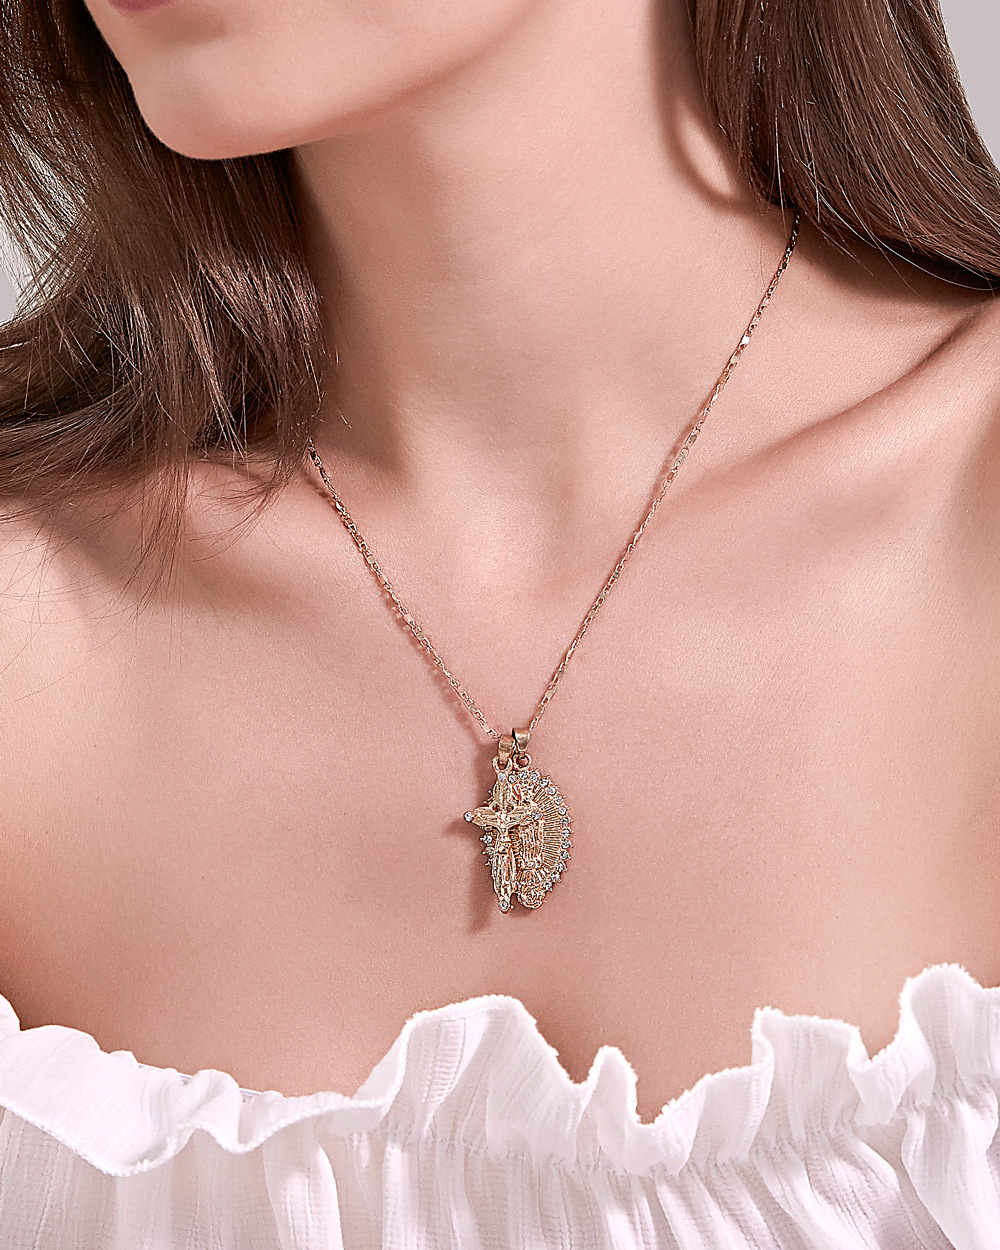 catholic crucifixion Christian cross necklace Virgin Mary double pendant necklace wholesale nihaojewelry NHDP233632